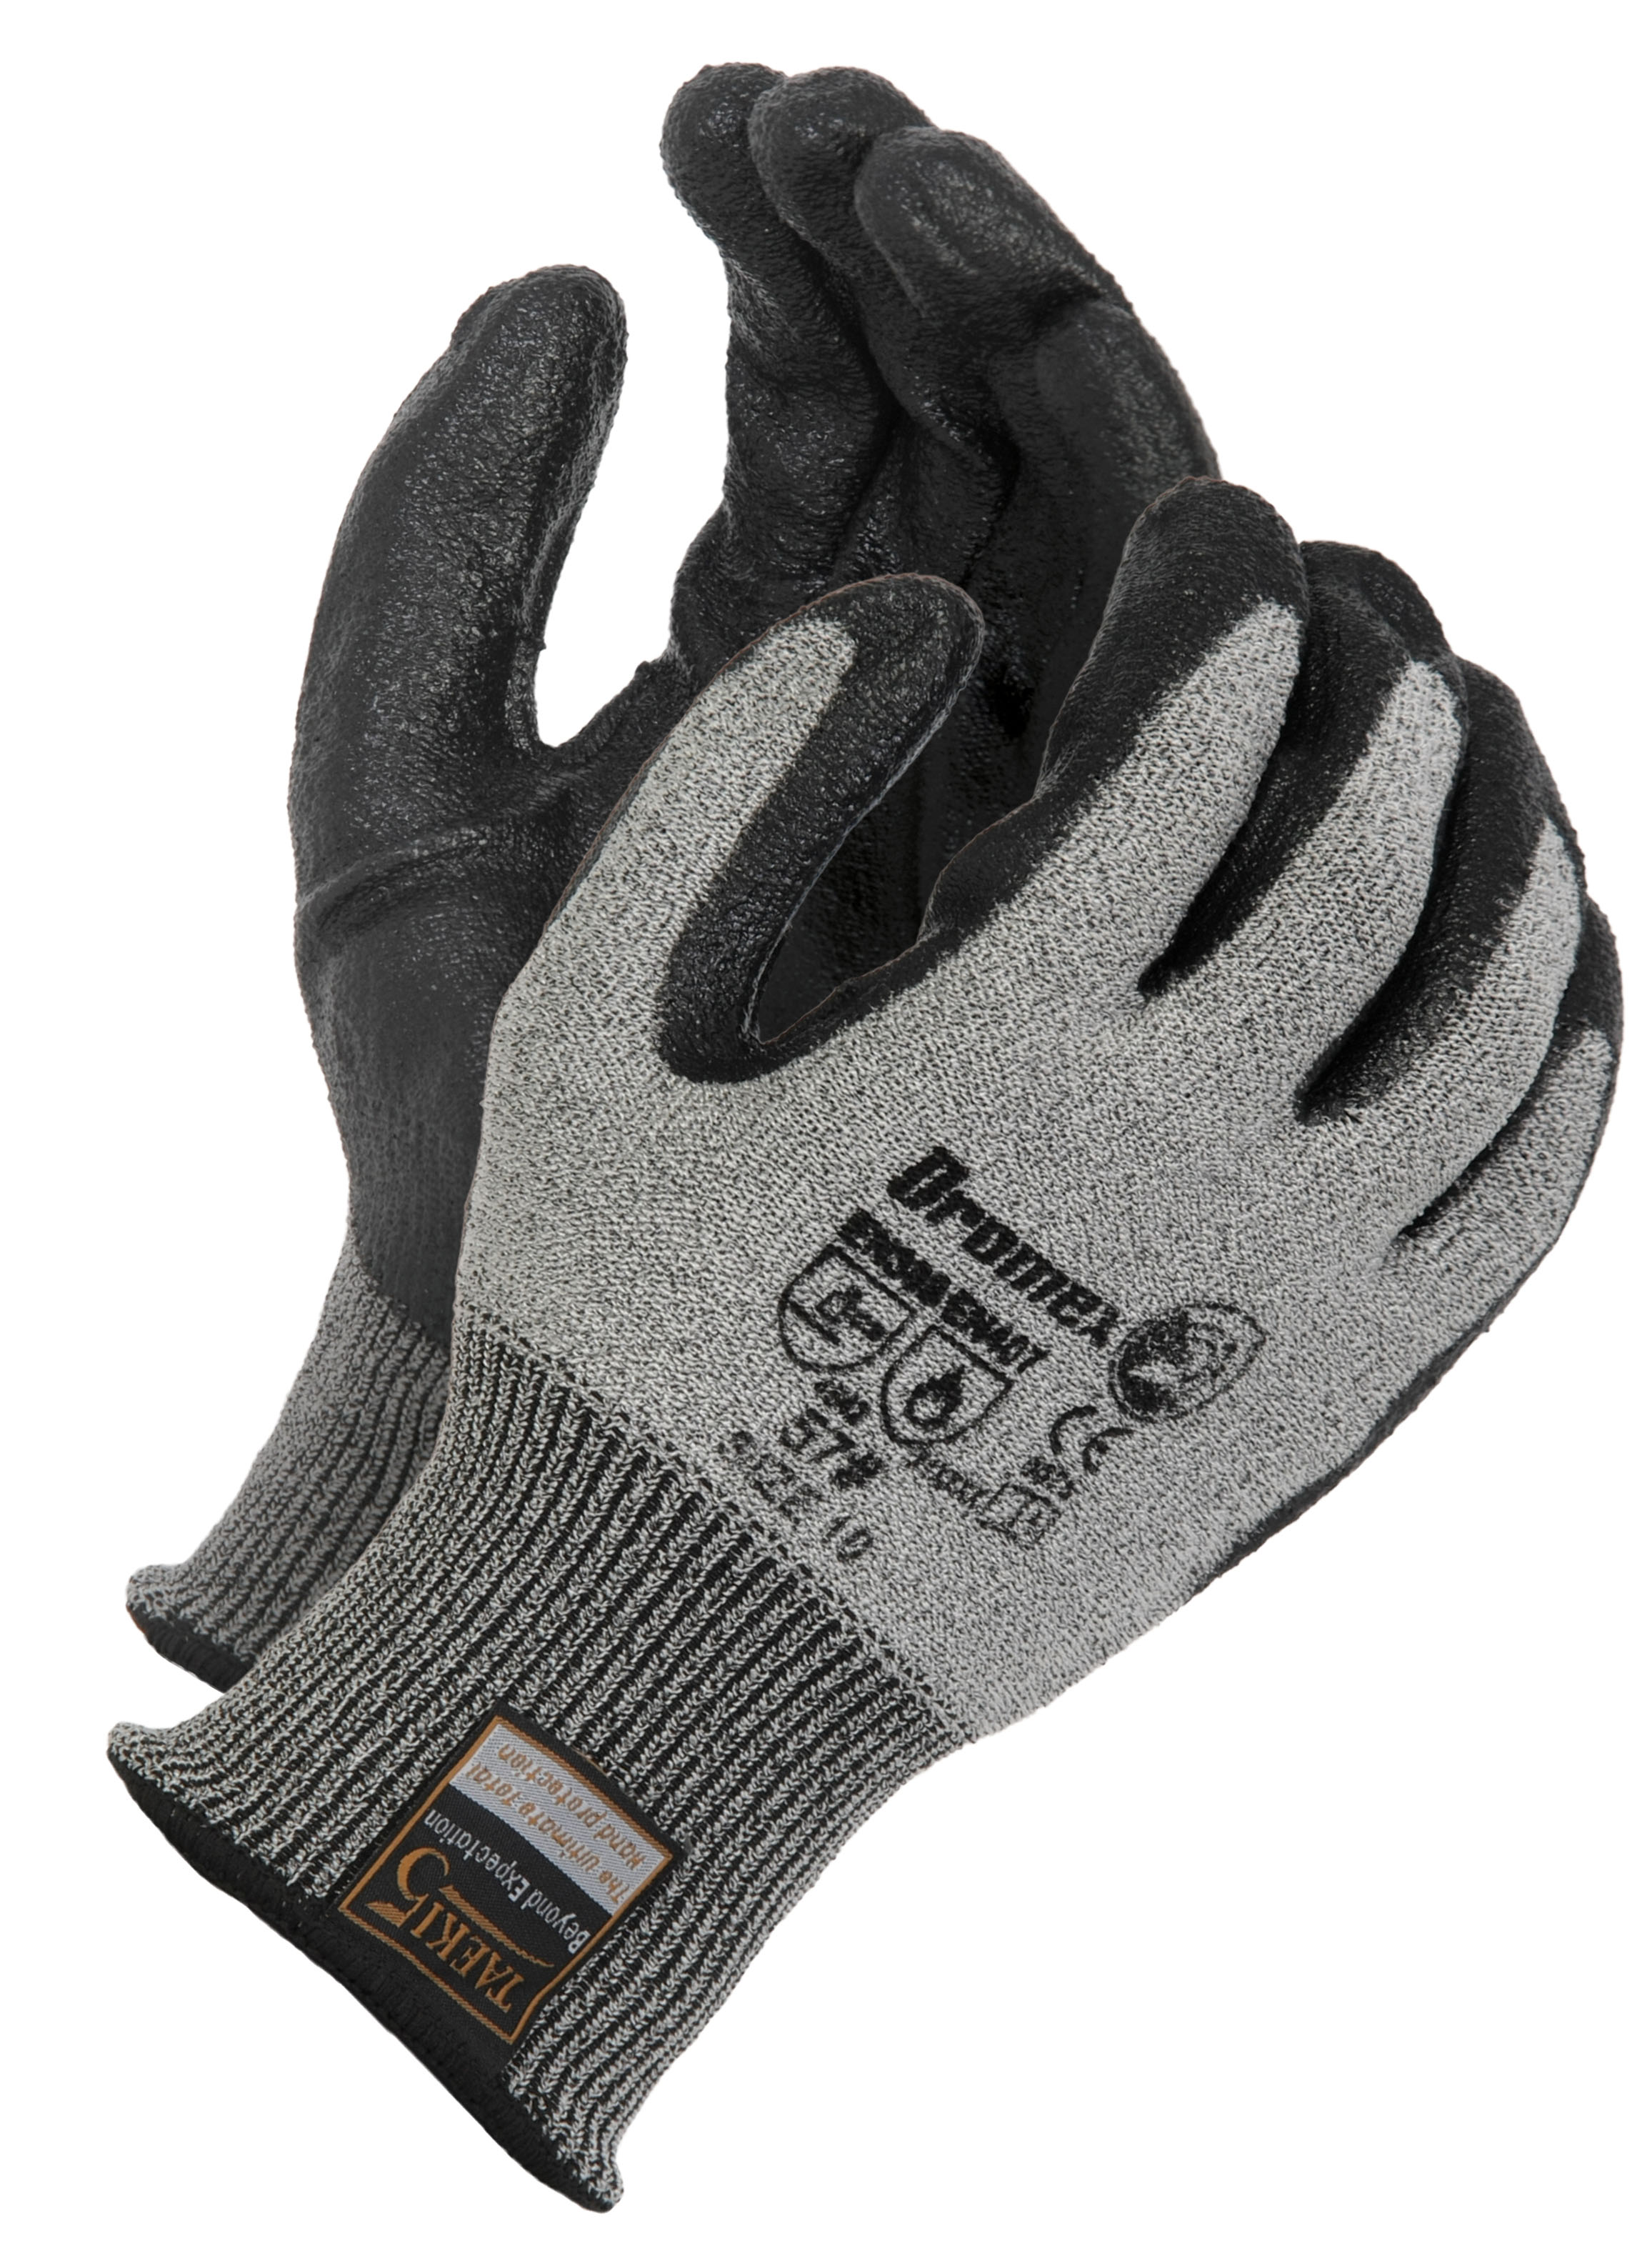 Safety Wear Hand Protection Cut Resistant Taeki5